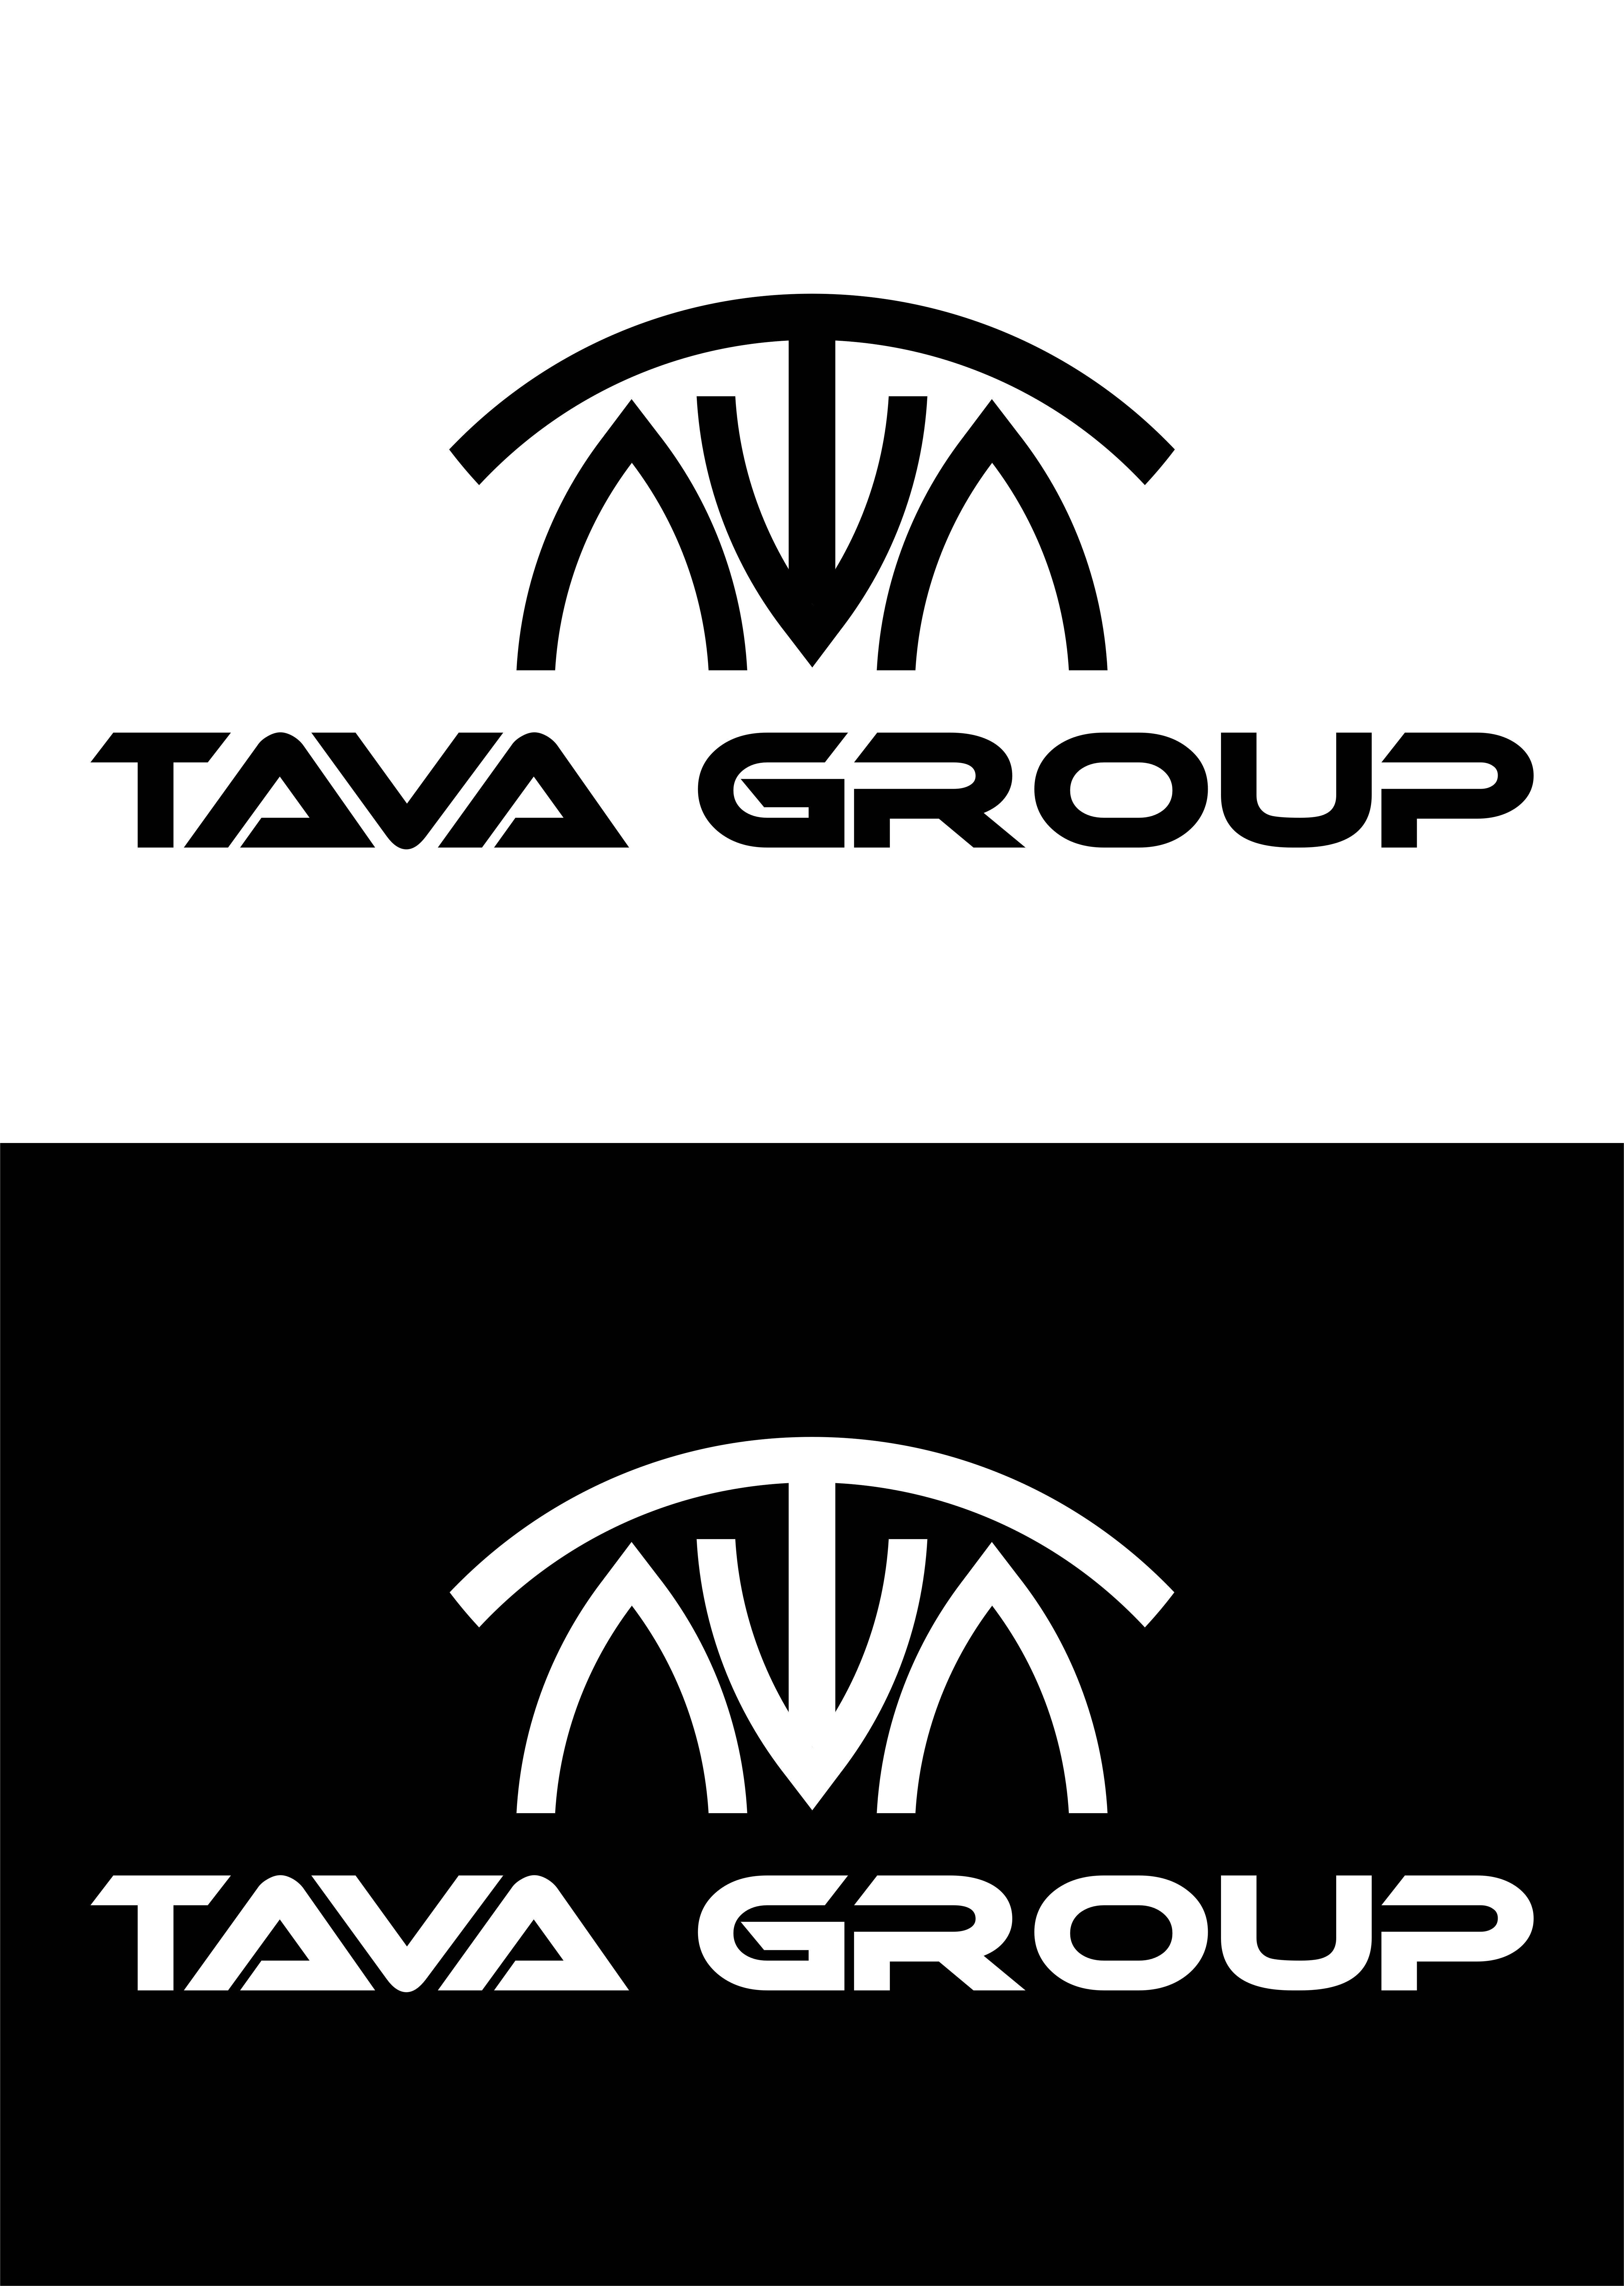 Logo Design by I graphics GRAPHICS - Entry No. 239 in the Logo Design Contest Creative Logo Design for Tava Group.